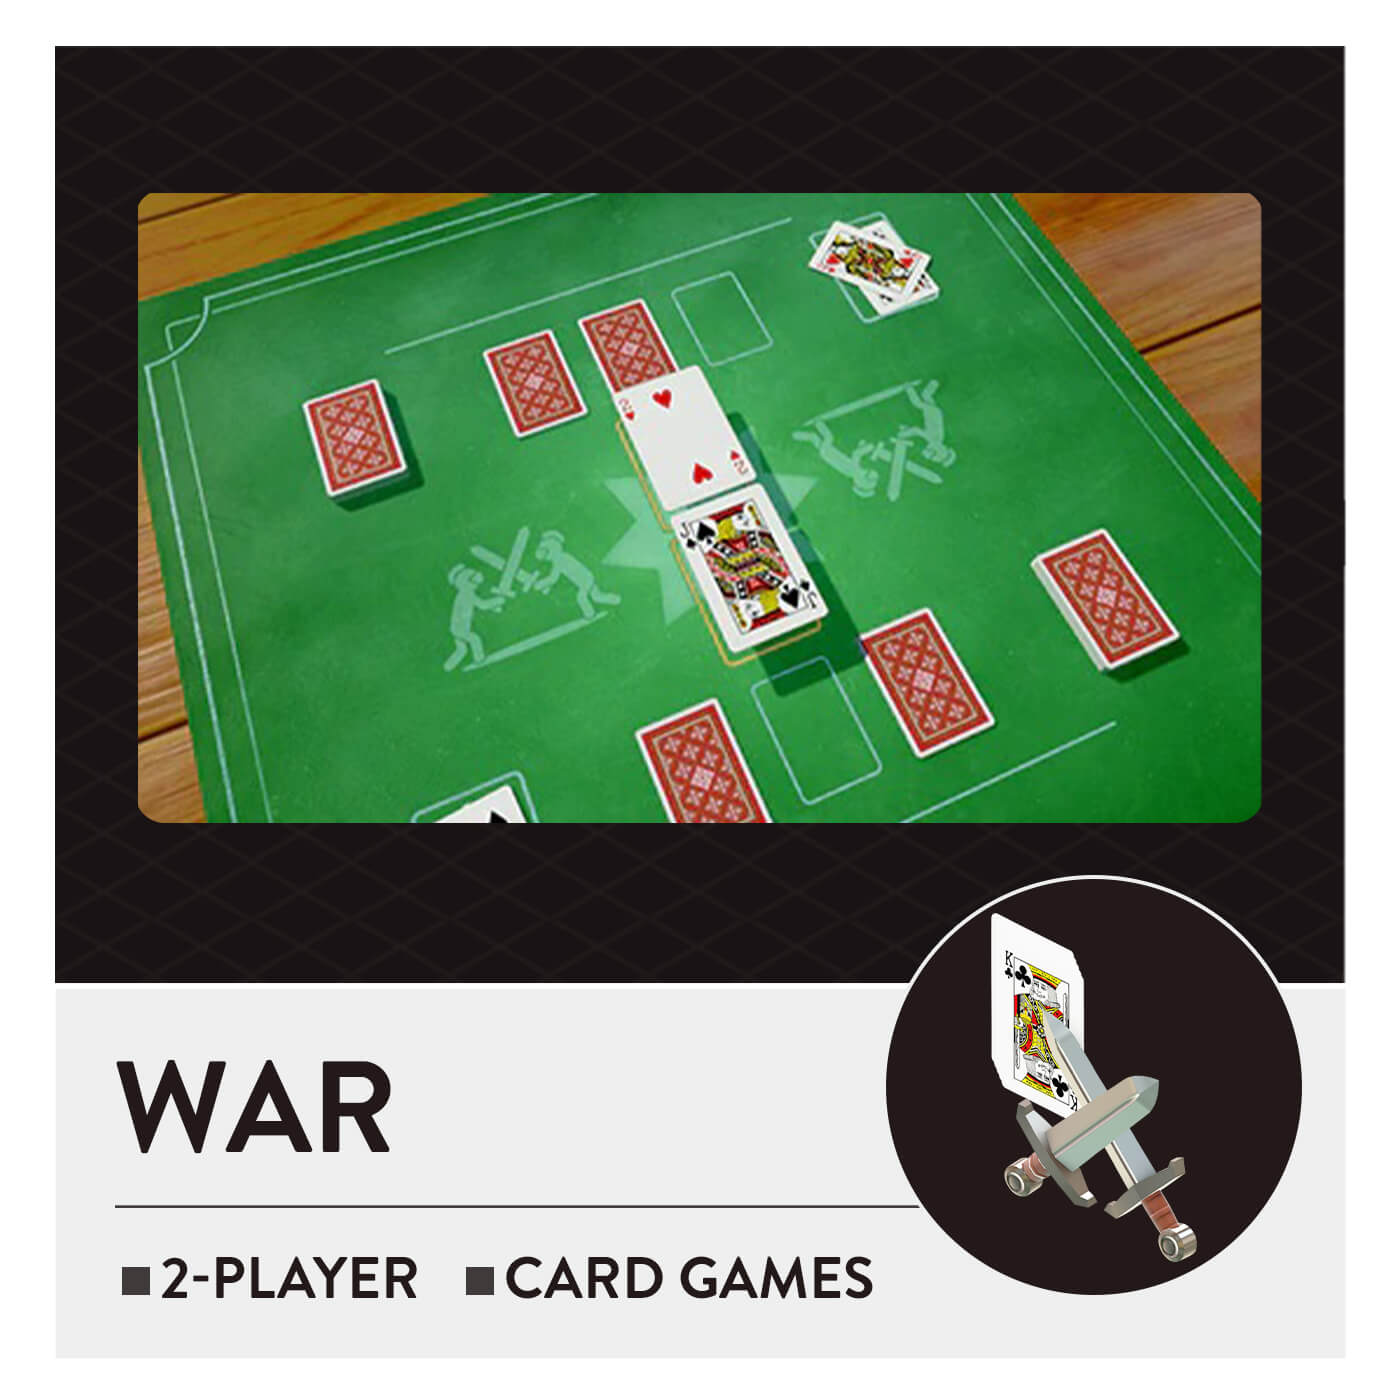 51 Worldwide Games - War